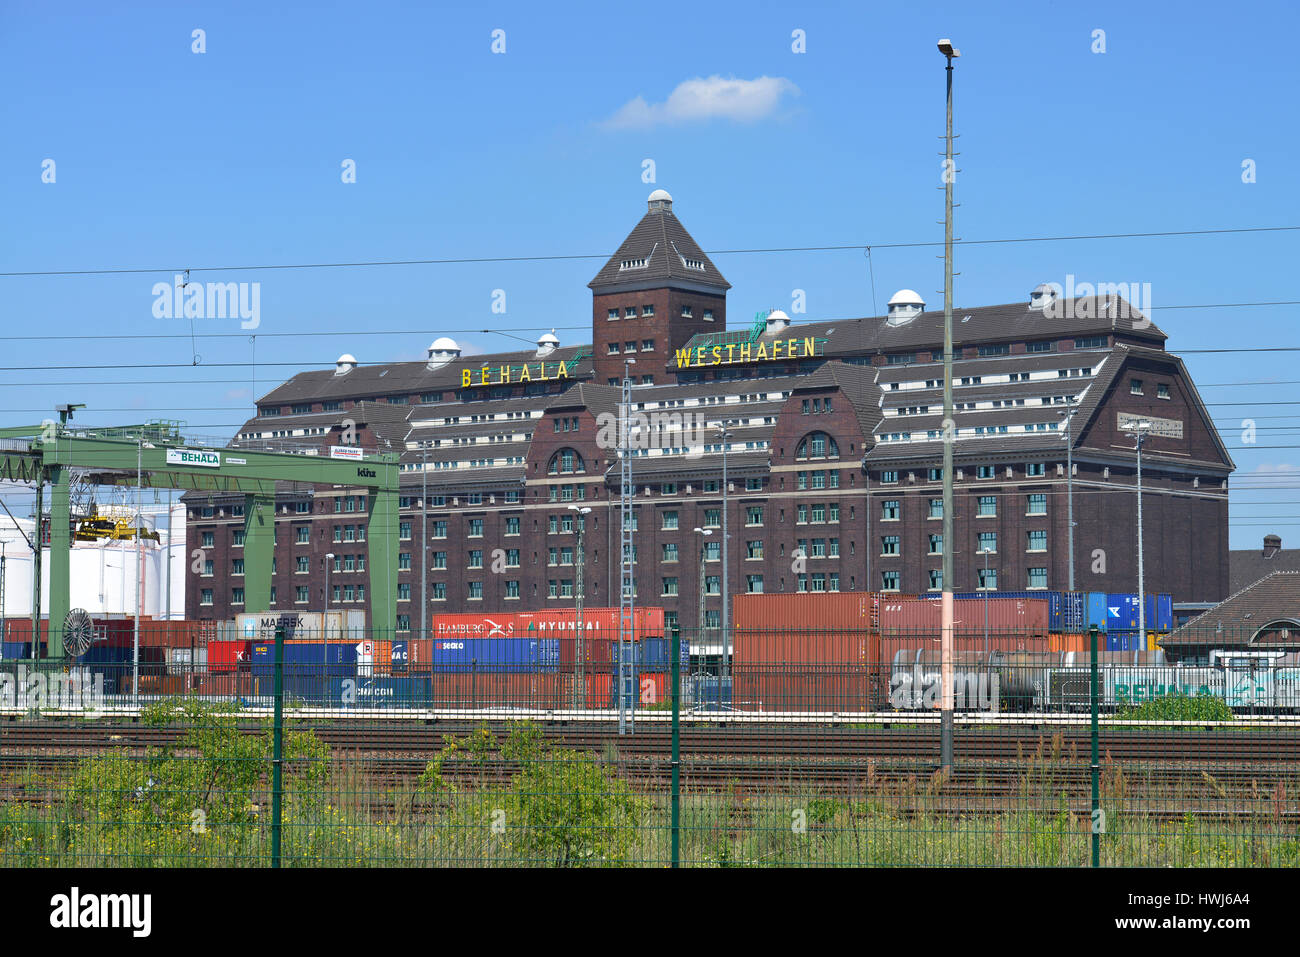 Lagerhaus, Behala, Westhafen, Moabit, Berlin, Deutschland Stock Photo